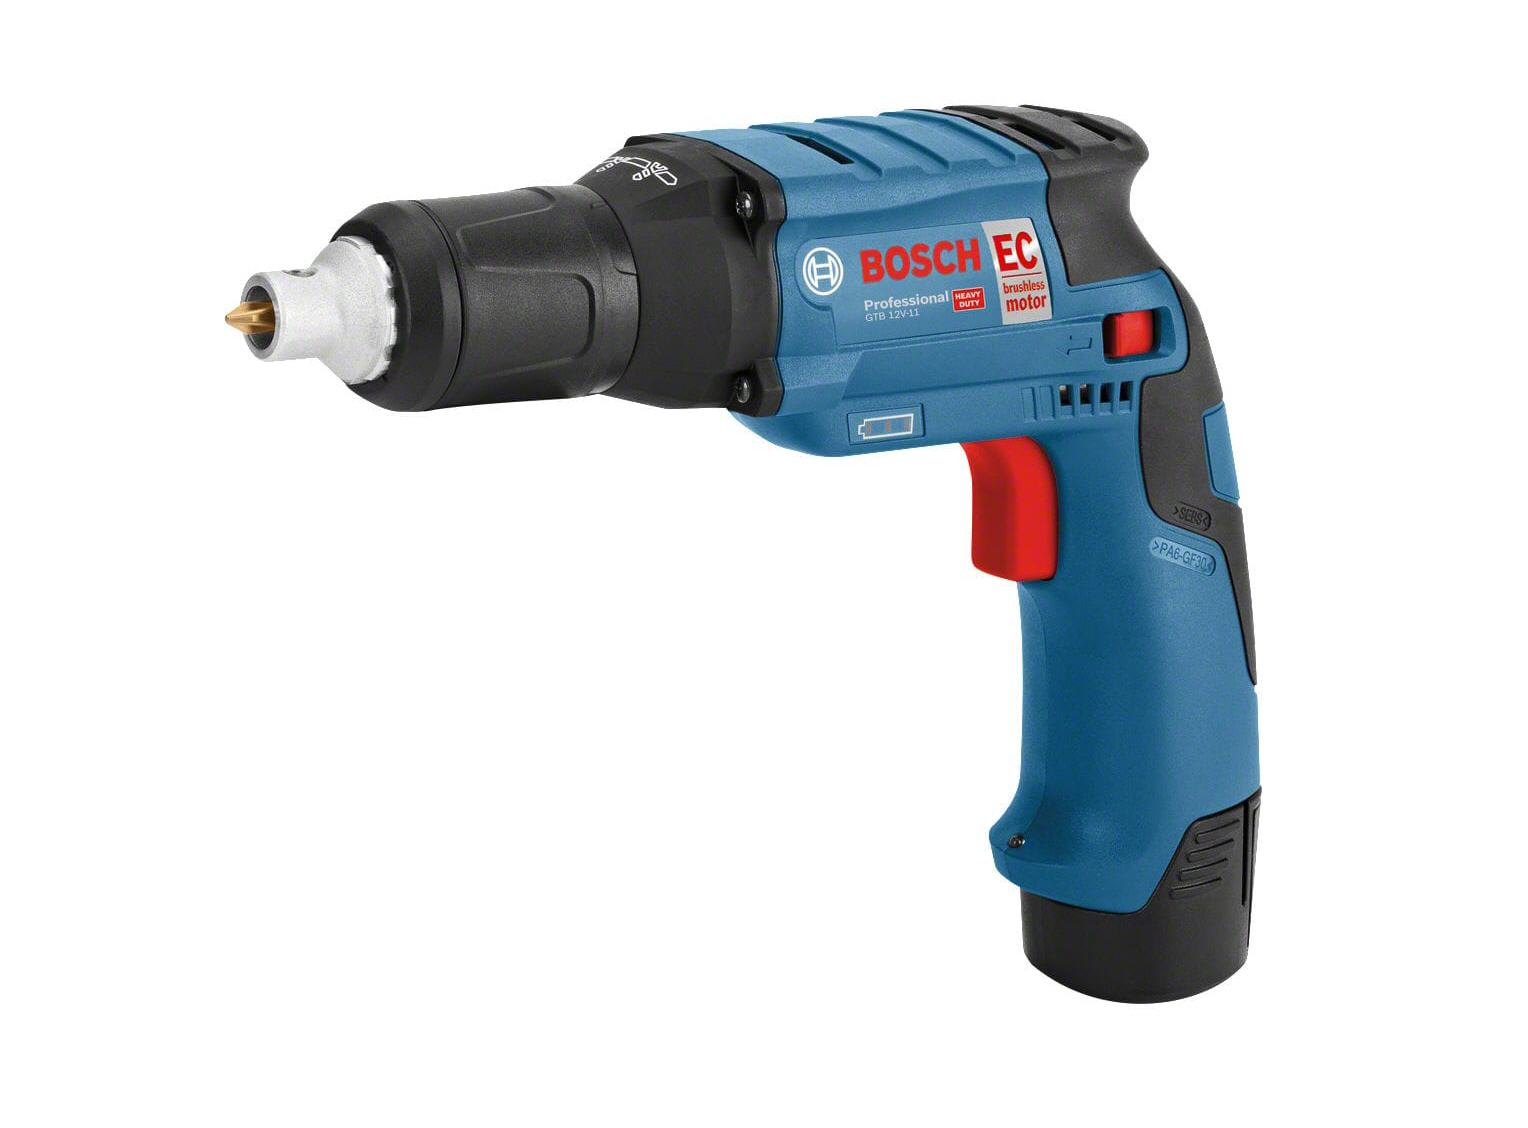 Choosing the right electric screwdriver